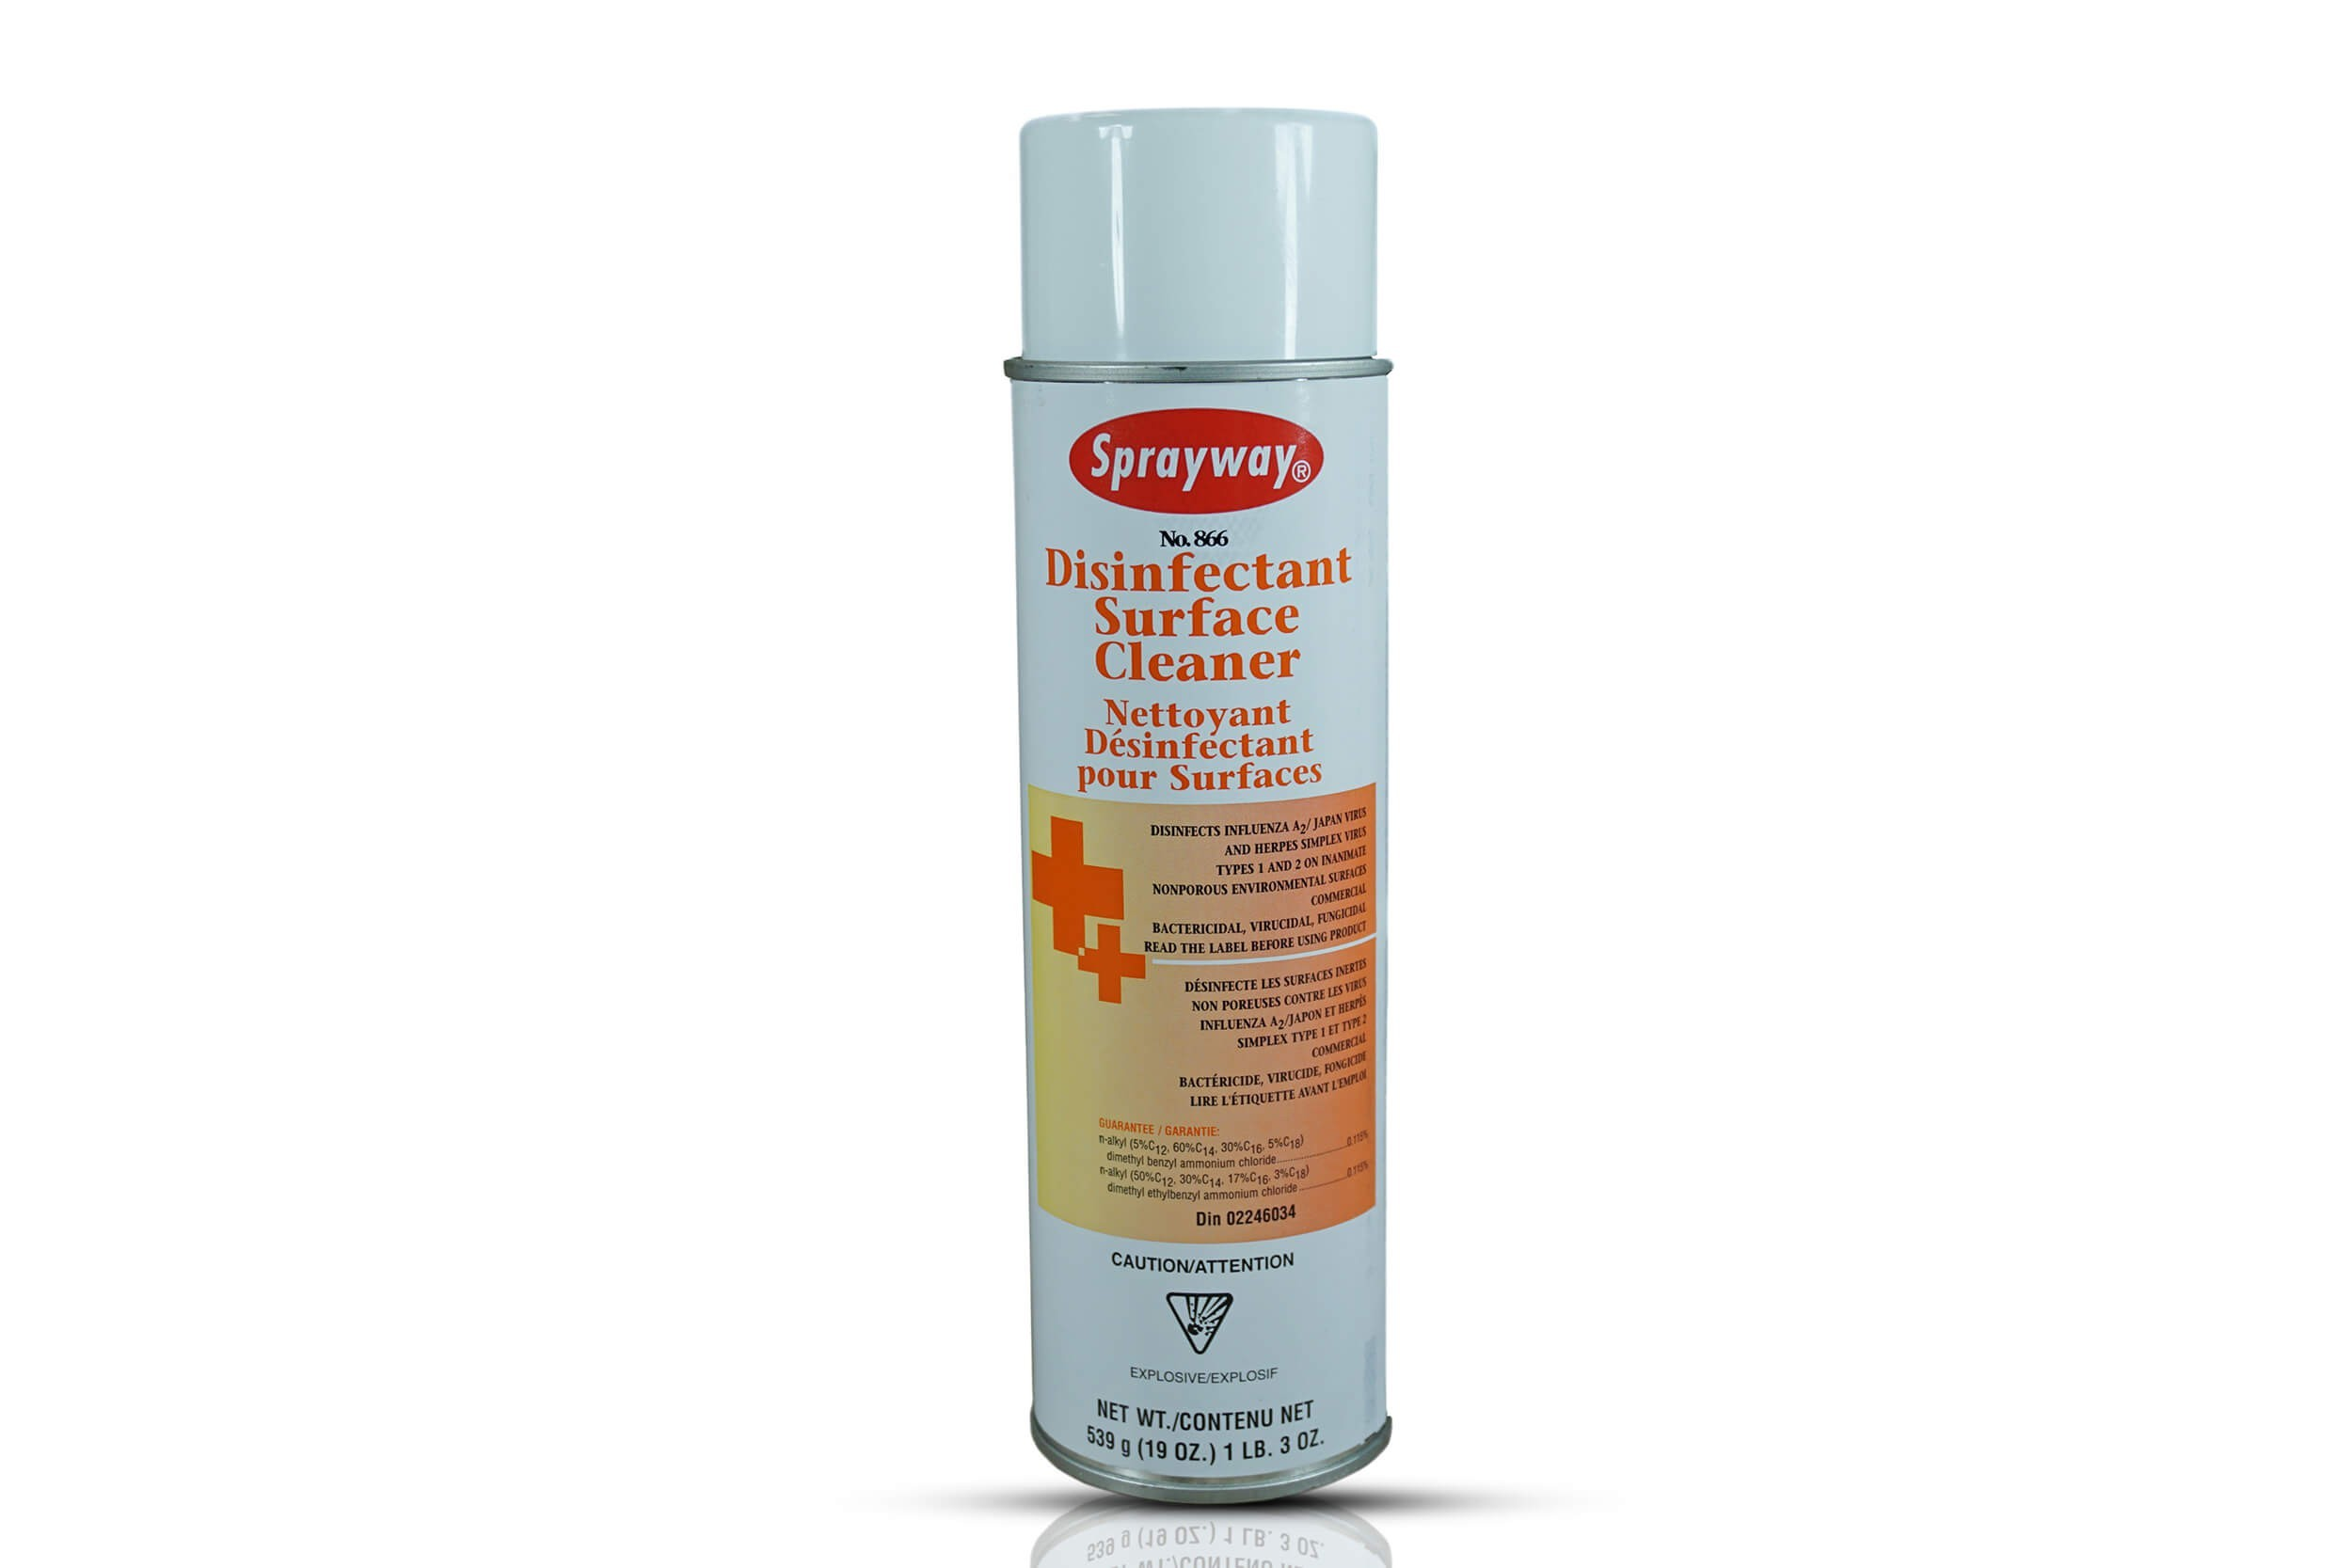 Sprayway Disinfectant Surface Cleaner